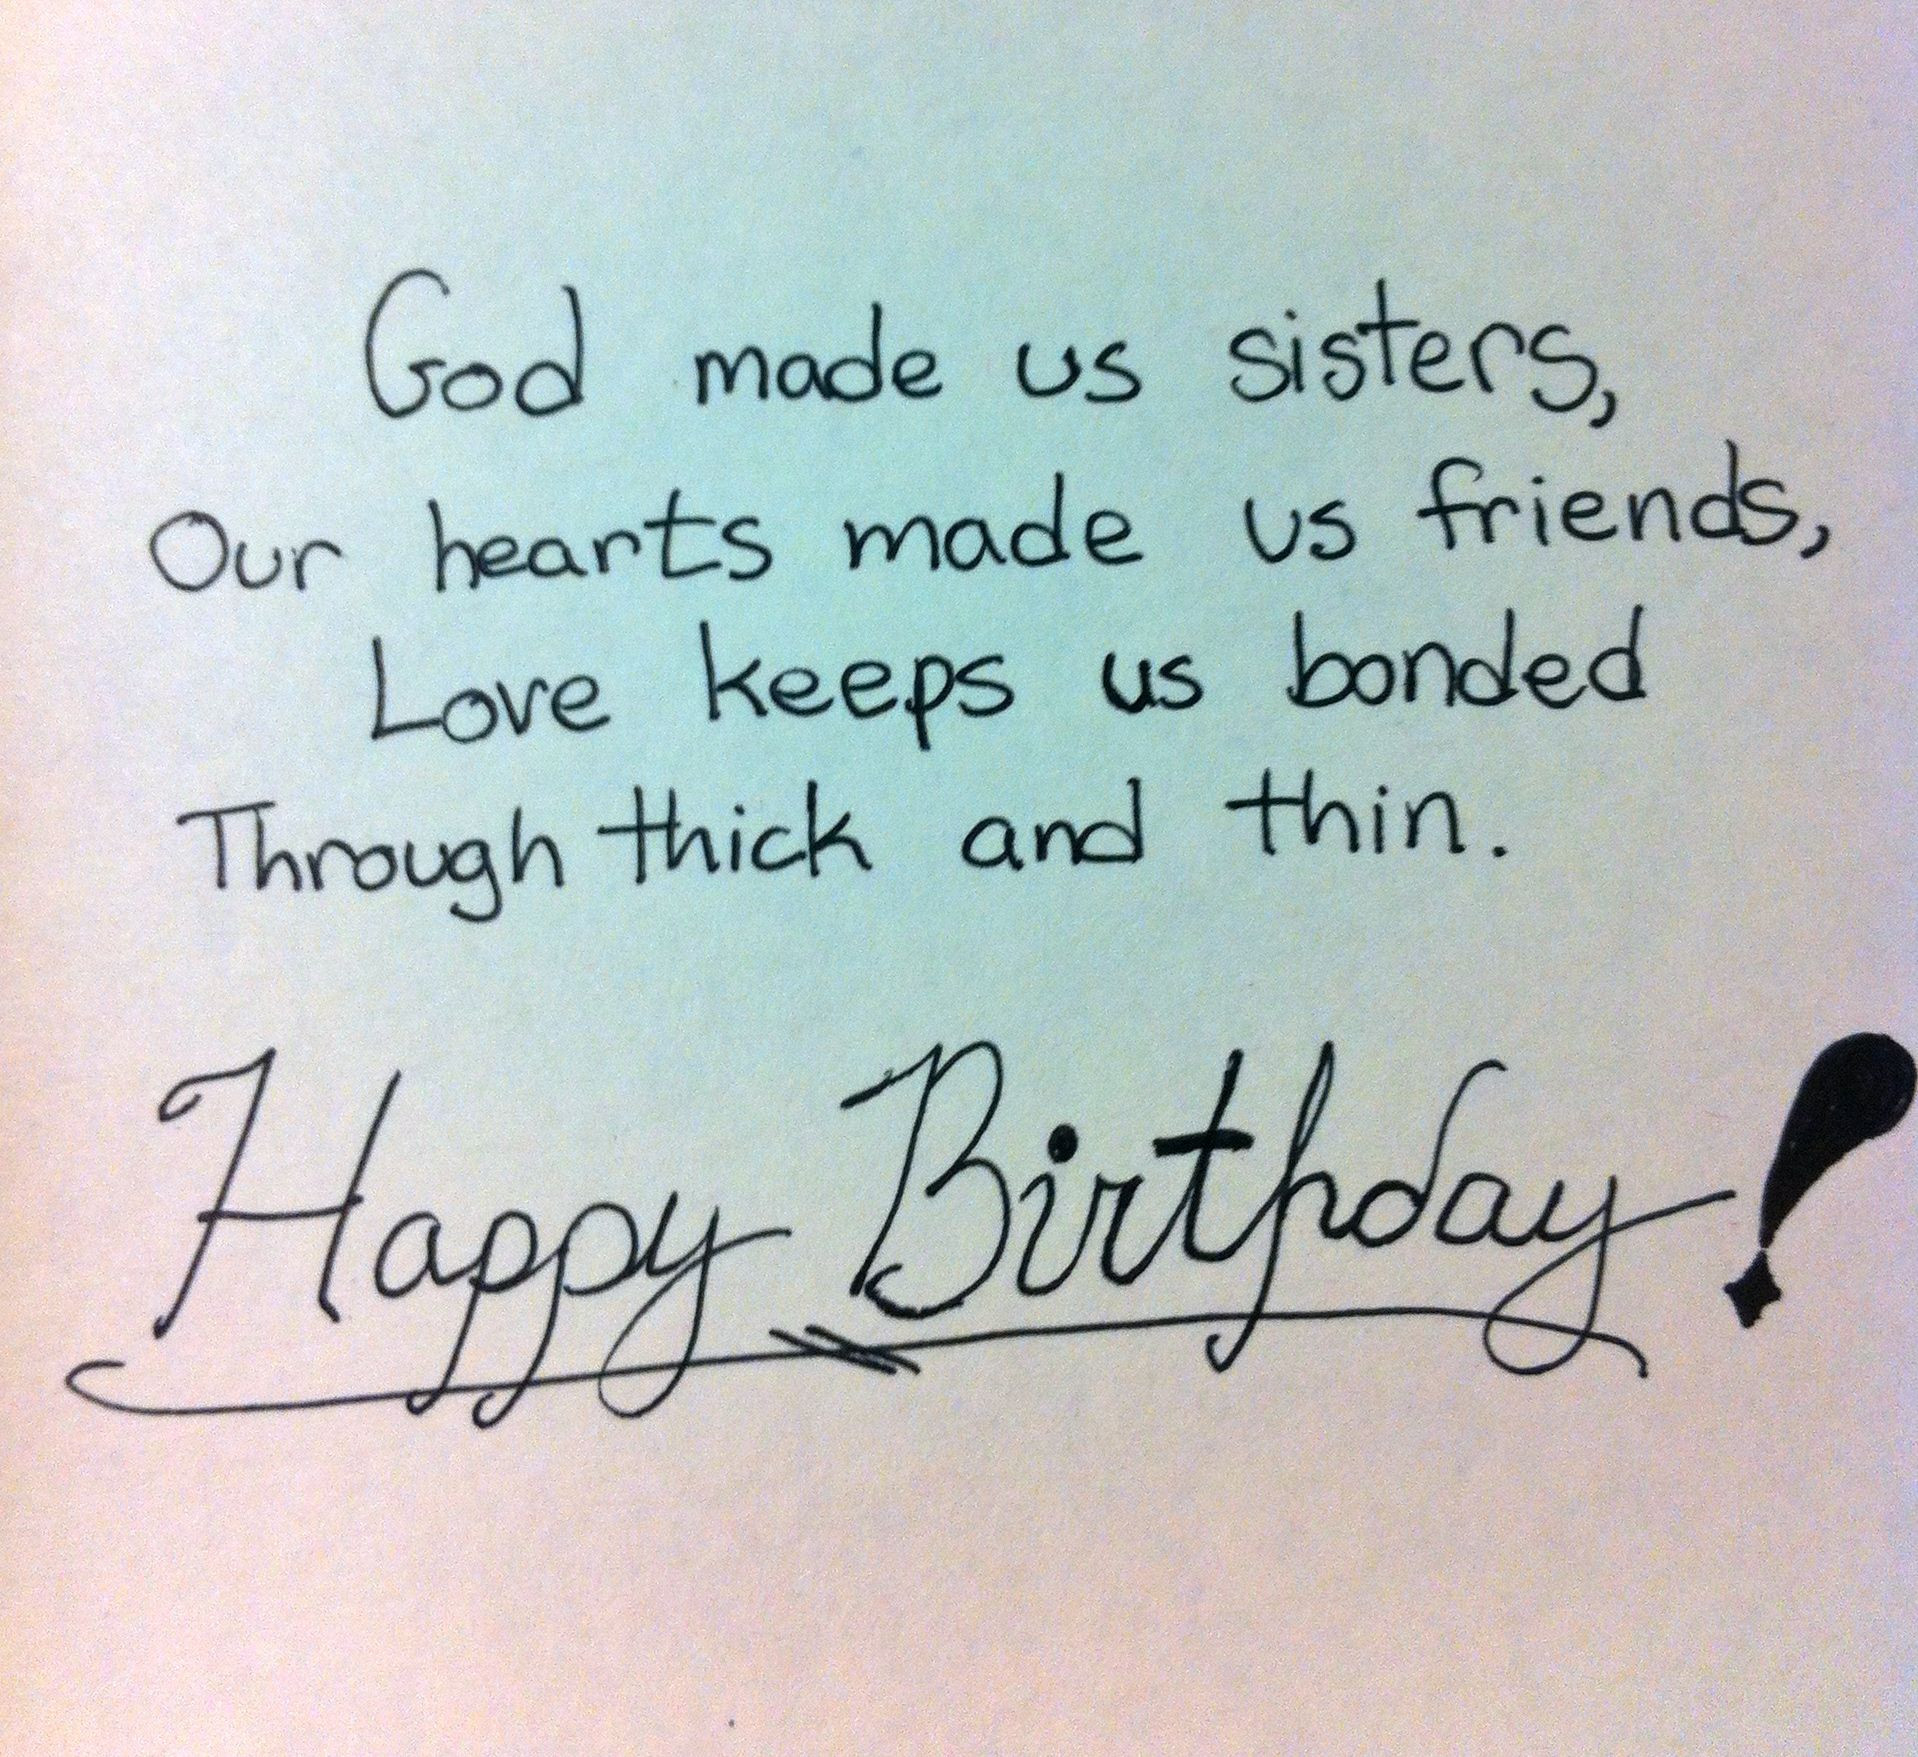 best birthday note ; happy-birthday-note-beautiful-best-happy-birthday-wishes-for-sister-birthday-wishes-of-happy-birthday-note